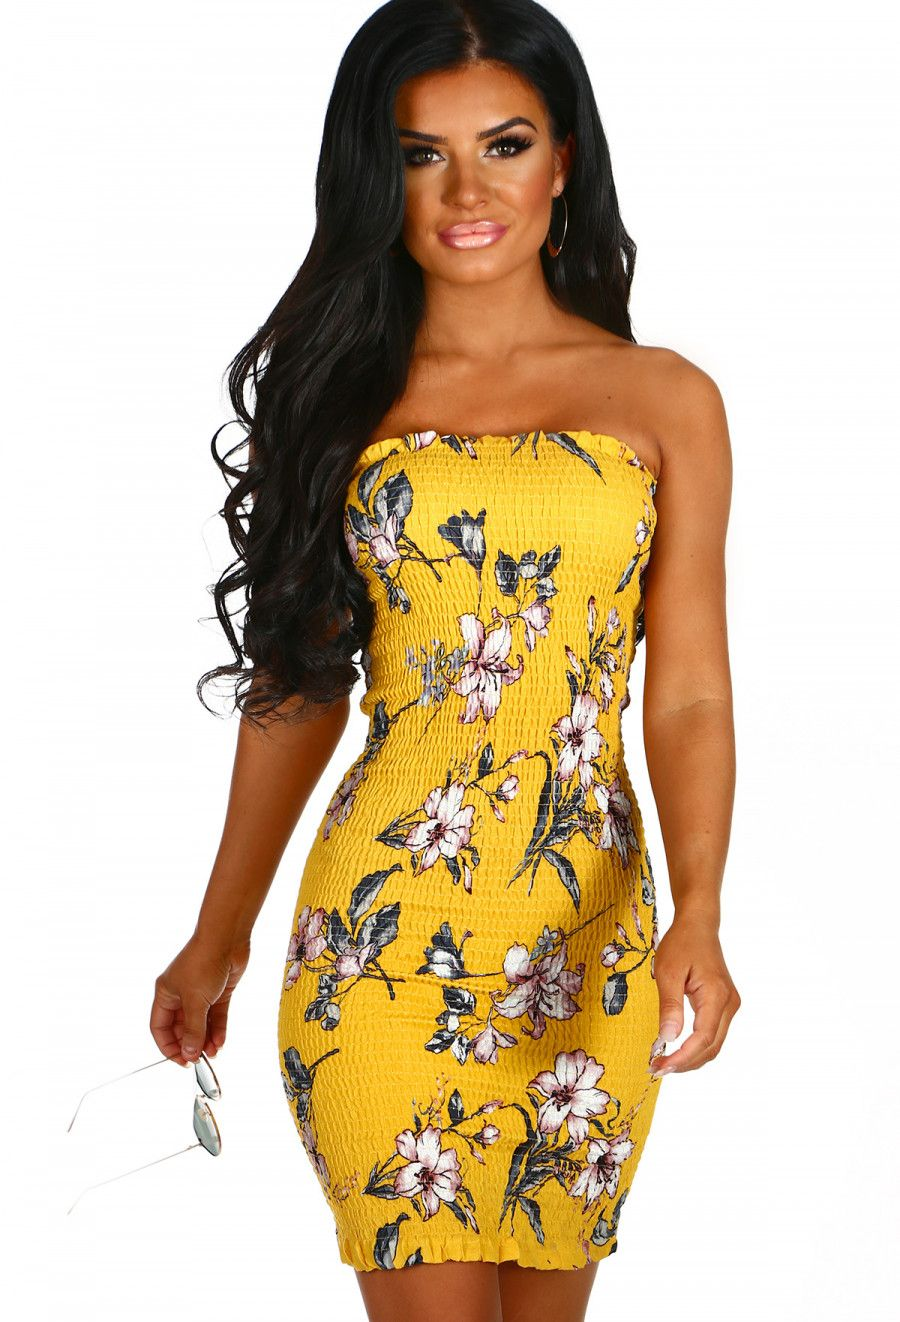 Sunset Boulevard Yellow Floral Strapless Bodycon Mini Dress Pink Boutique Body Con Dress Outfit Yellow Mini Dress Yellow Floral Dress [ 1322 x 900 Pixel ]